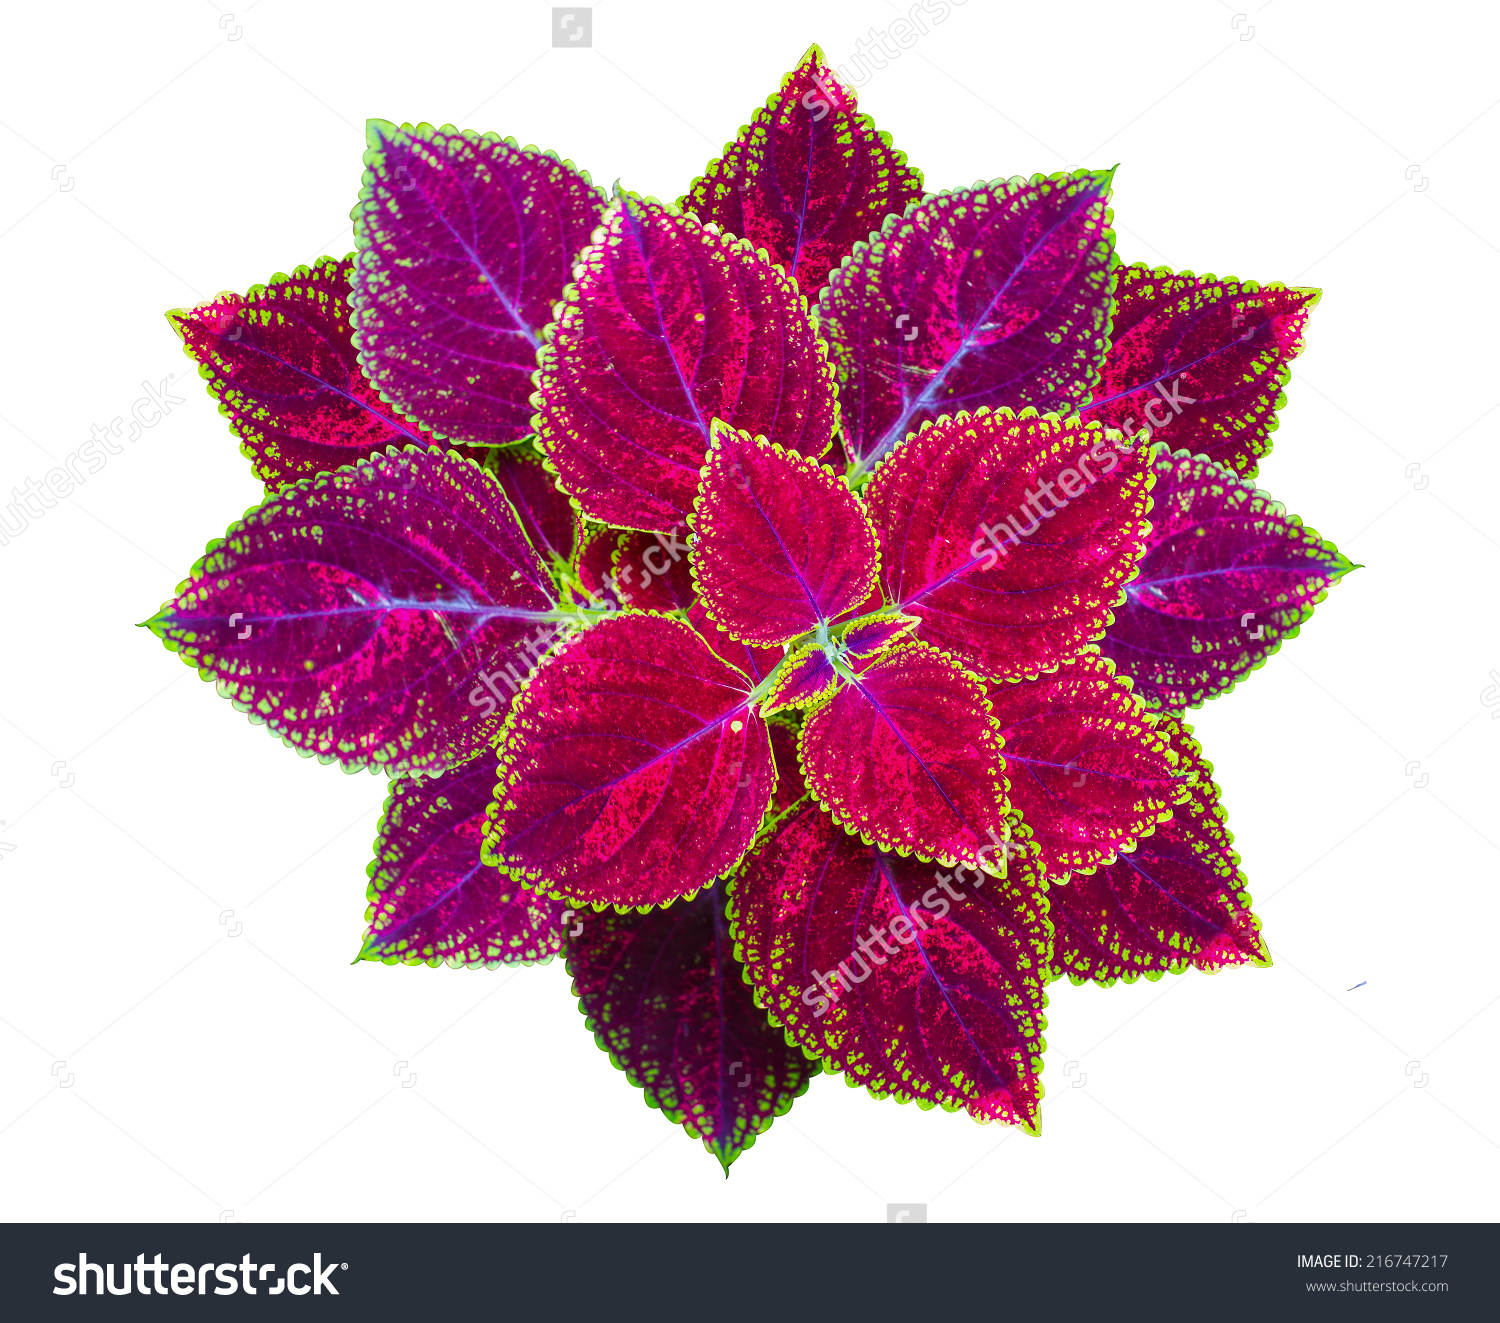 Painted Nettle Flower Coleus Plants Colorful Stock Photo 216747217.